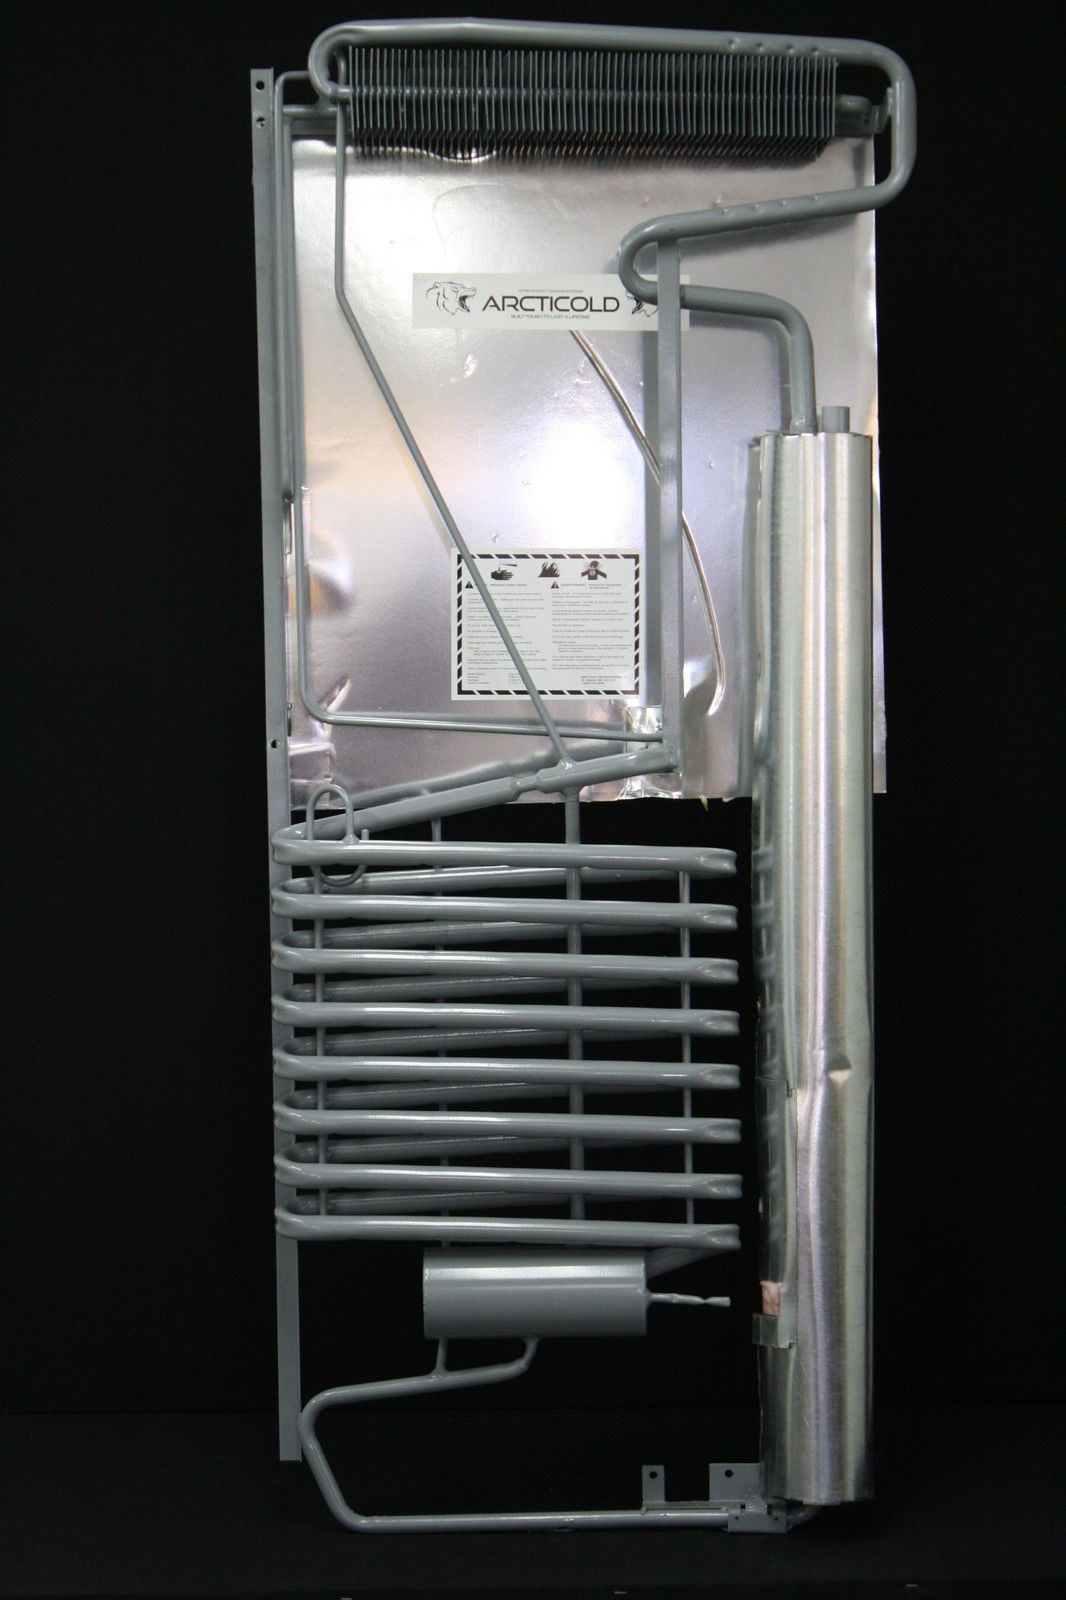 Arcticold New Lifetime Warranty Aftermarket Cooling Unit For Dometic Rm2800 Cooling Unit The Unit Manufacturing